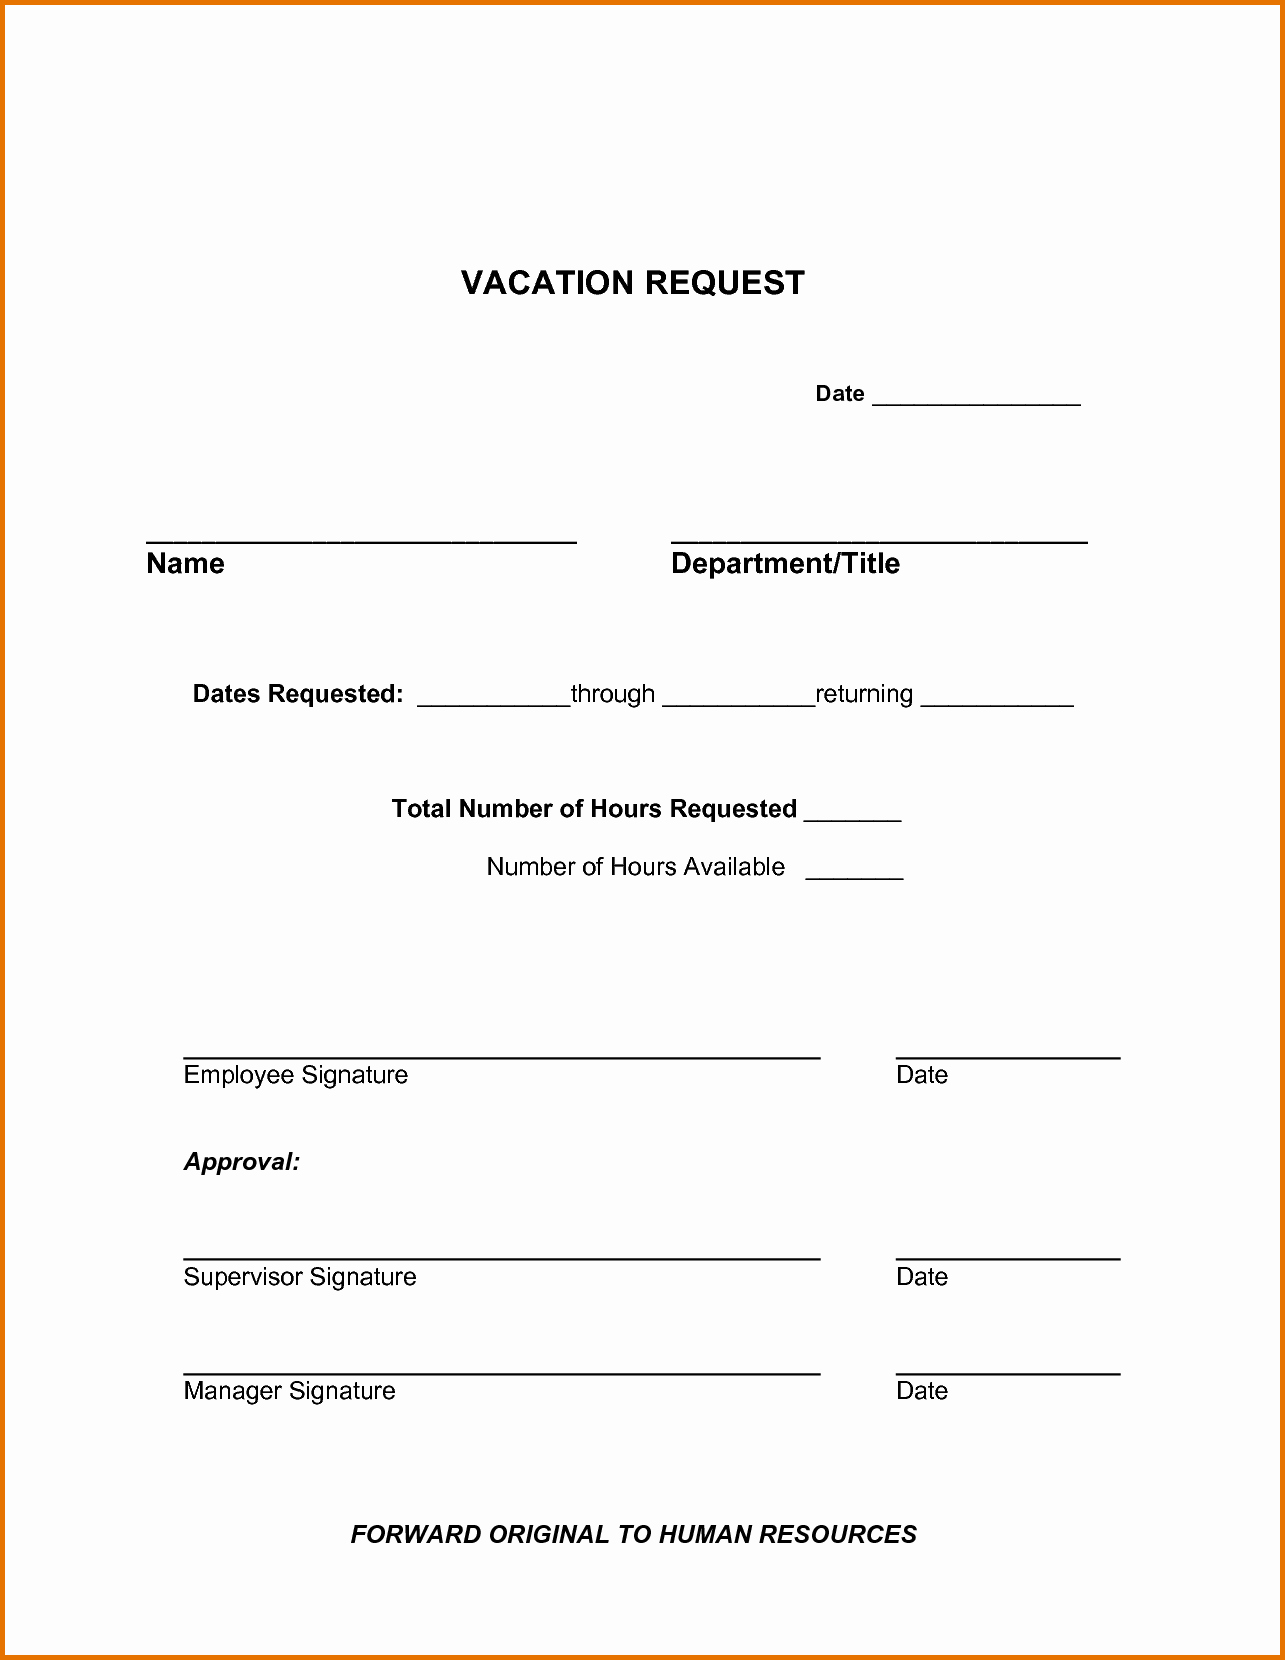 Vacation Request form Template New Vacation Request form Template – Teplates for Every Day